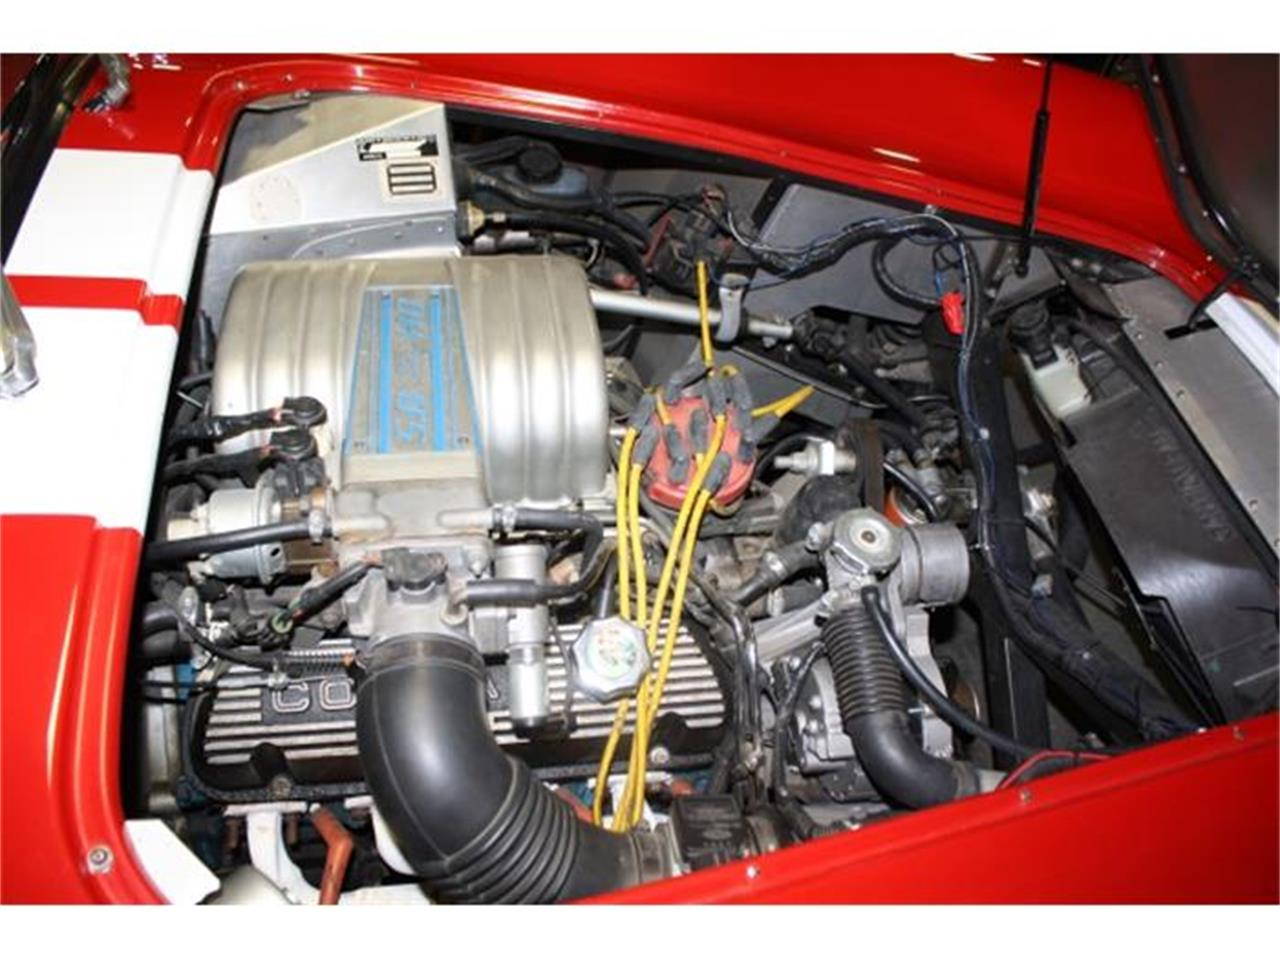 Large Picture of Classic '65 Ford Factory Five  Cobra located in Branson Missouri - $40,000.00 - EKYO